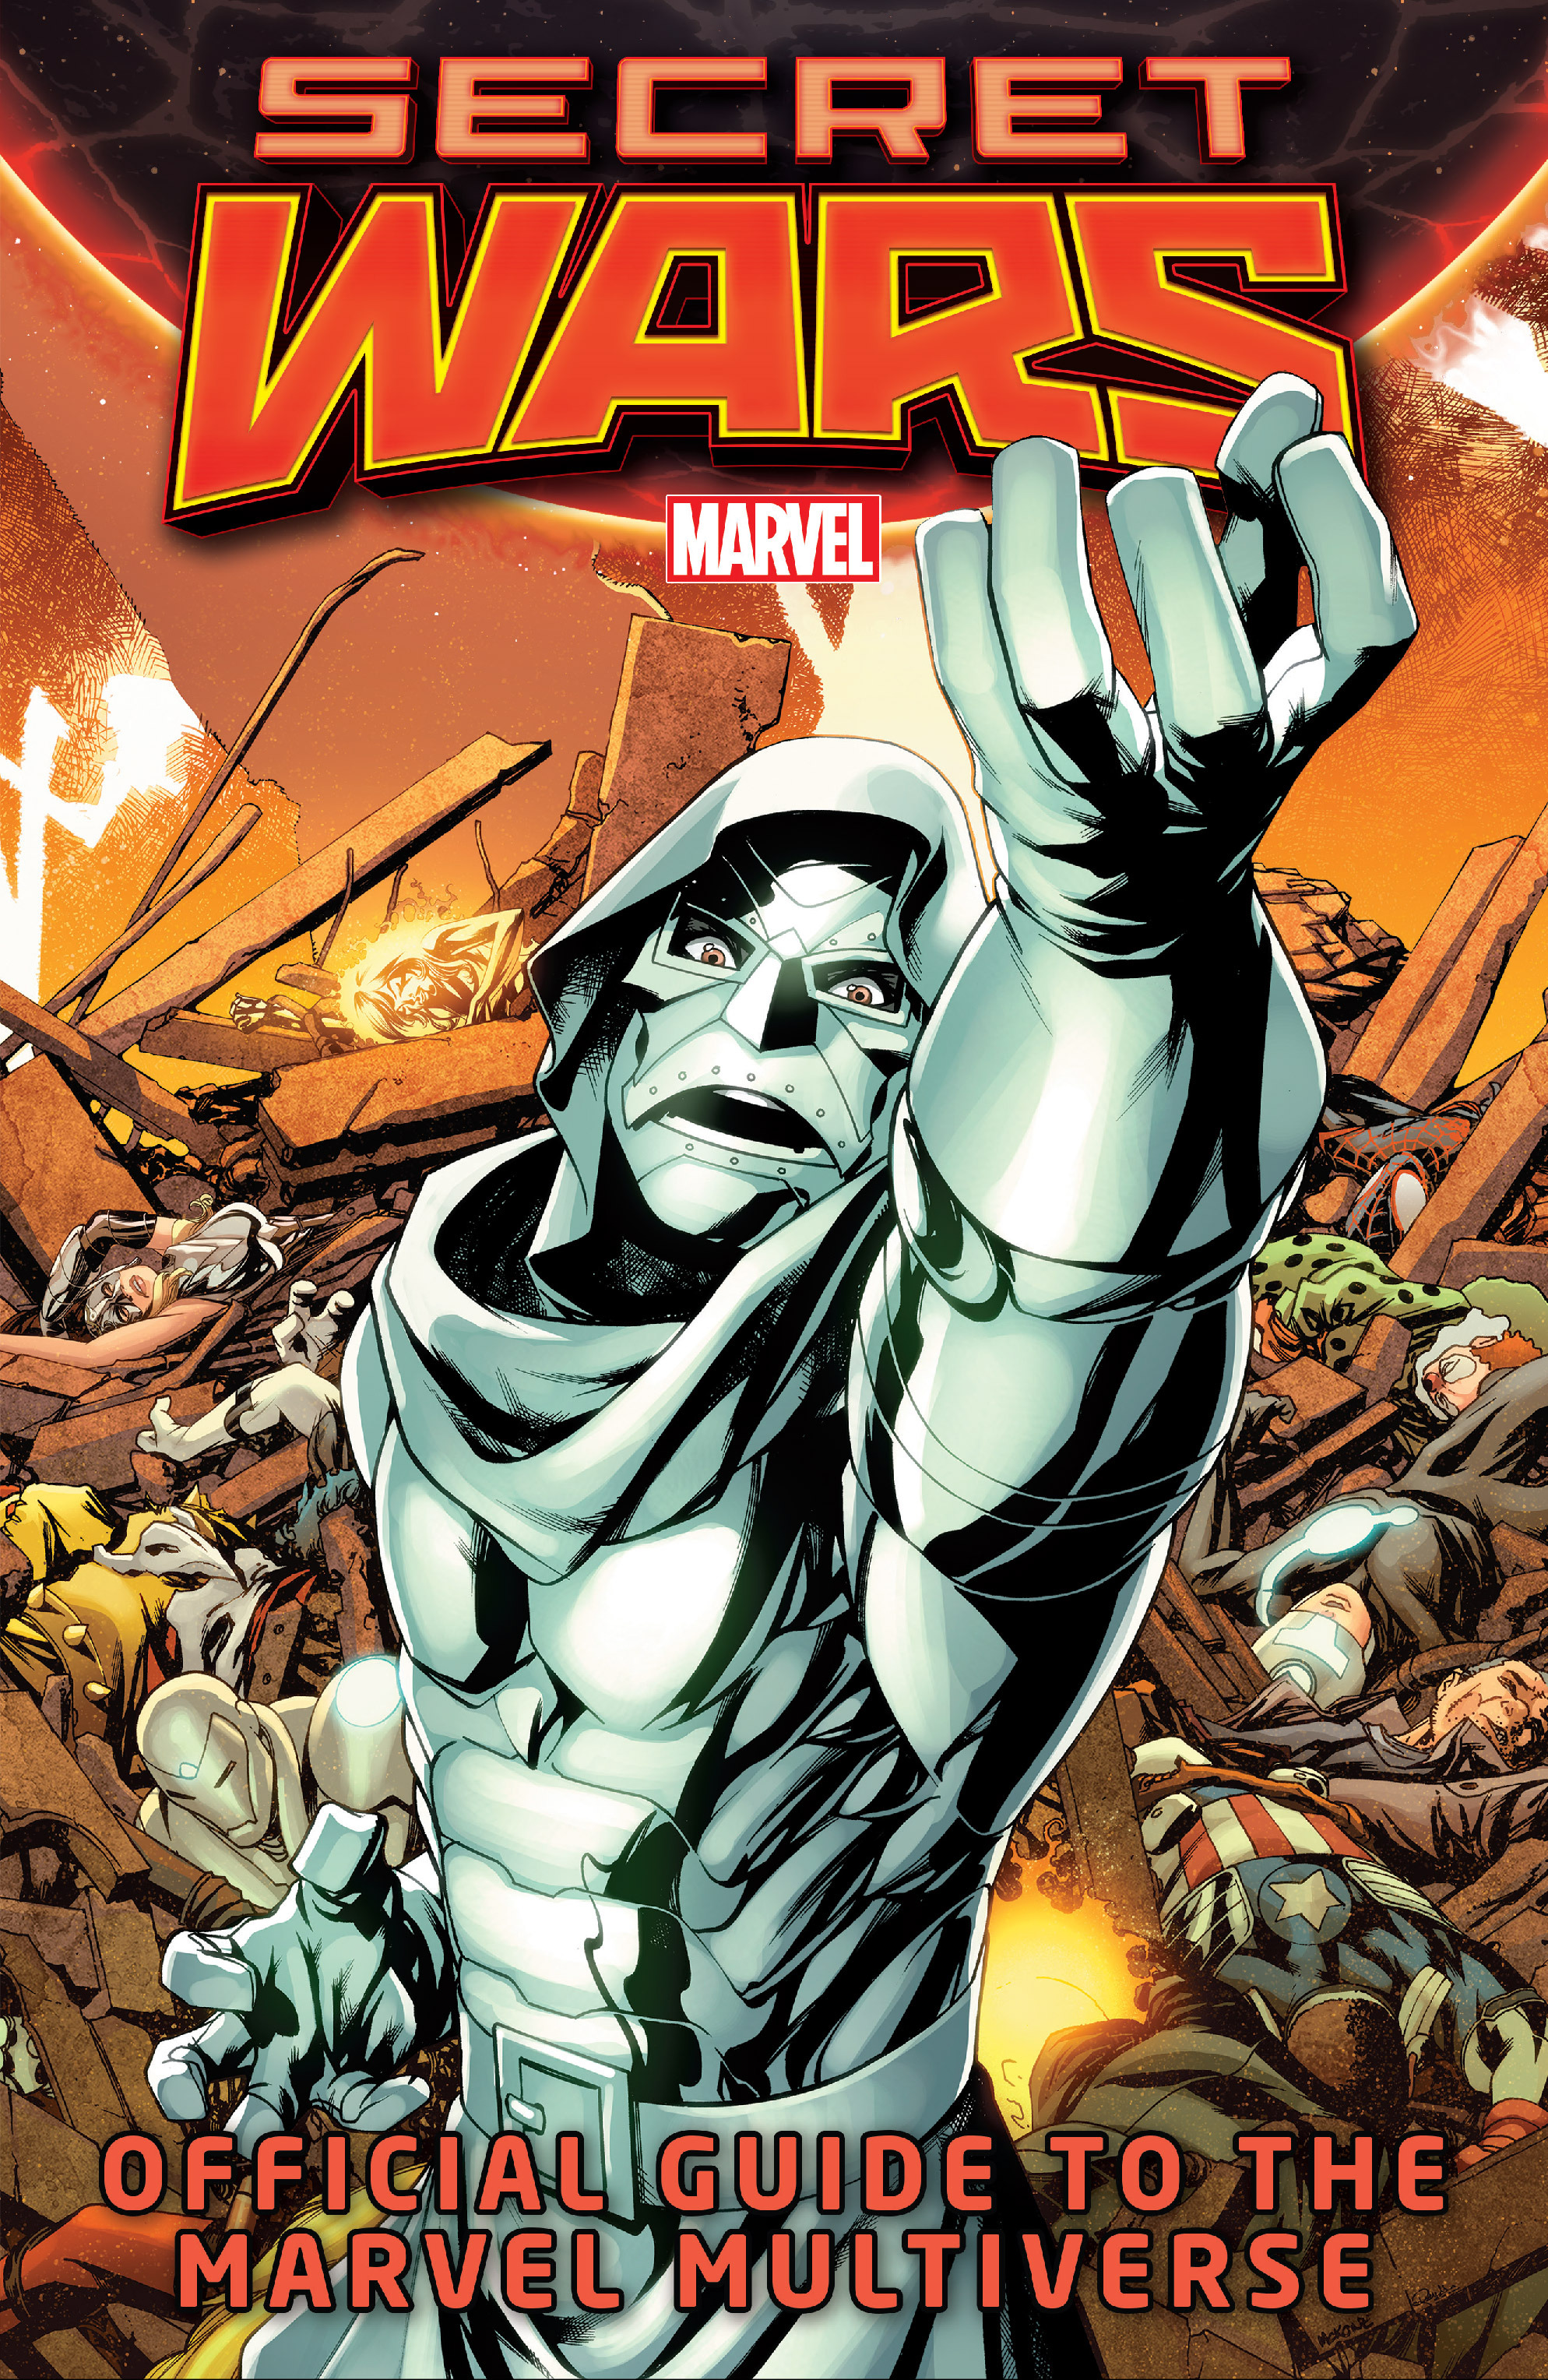 Read online Secret Wars: Official Guide to the Marvel Multiverse comic -  Issue # Full - 1